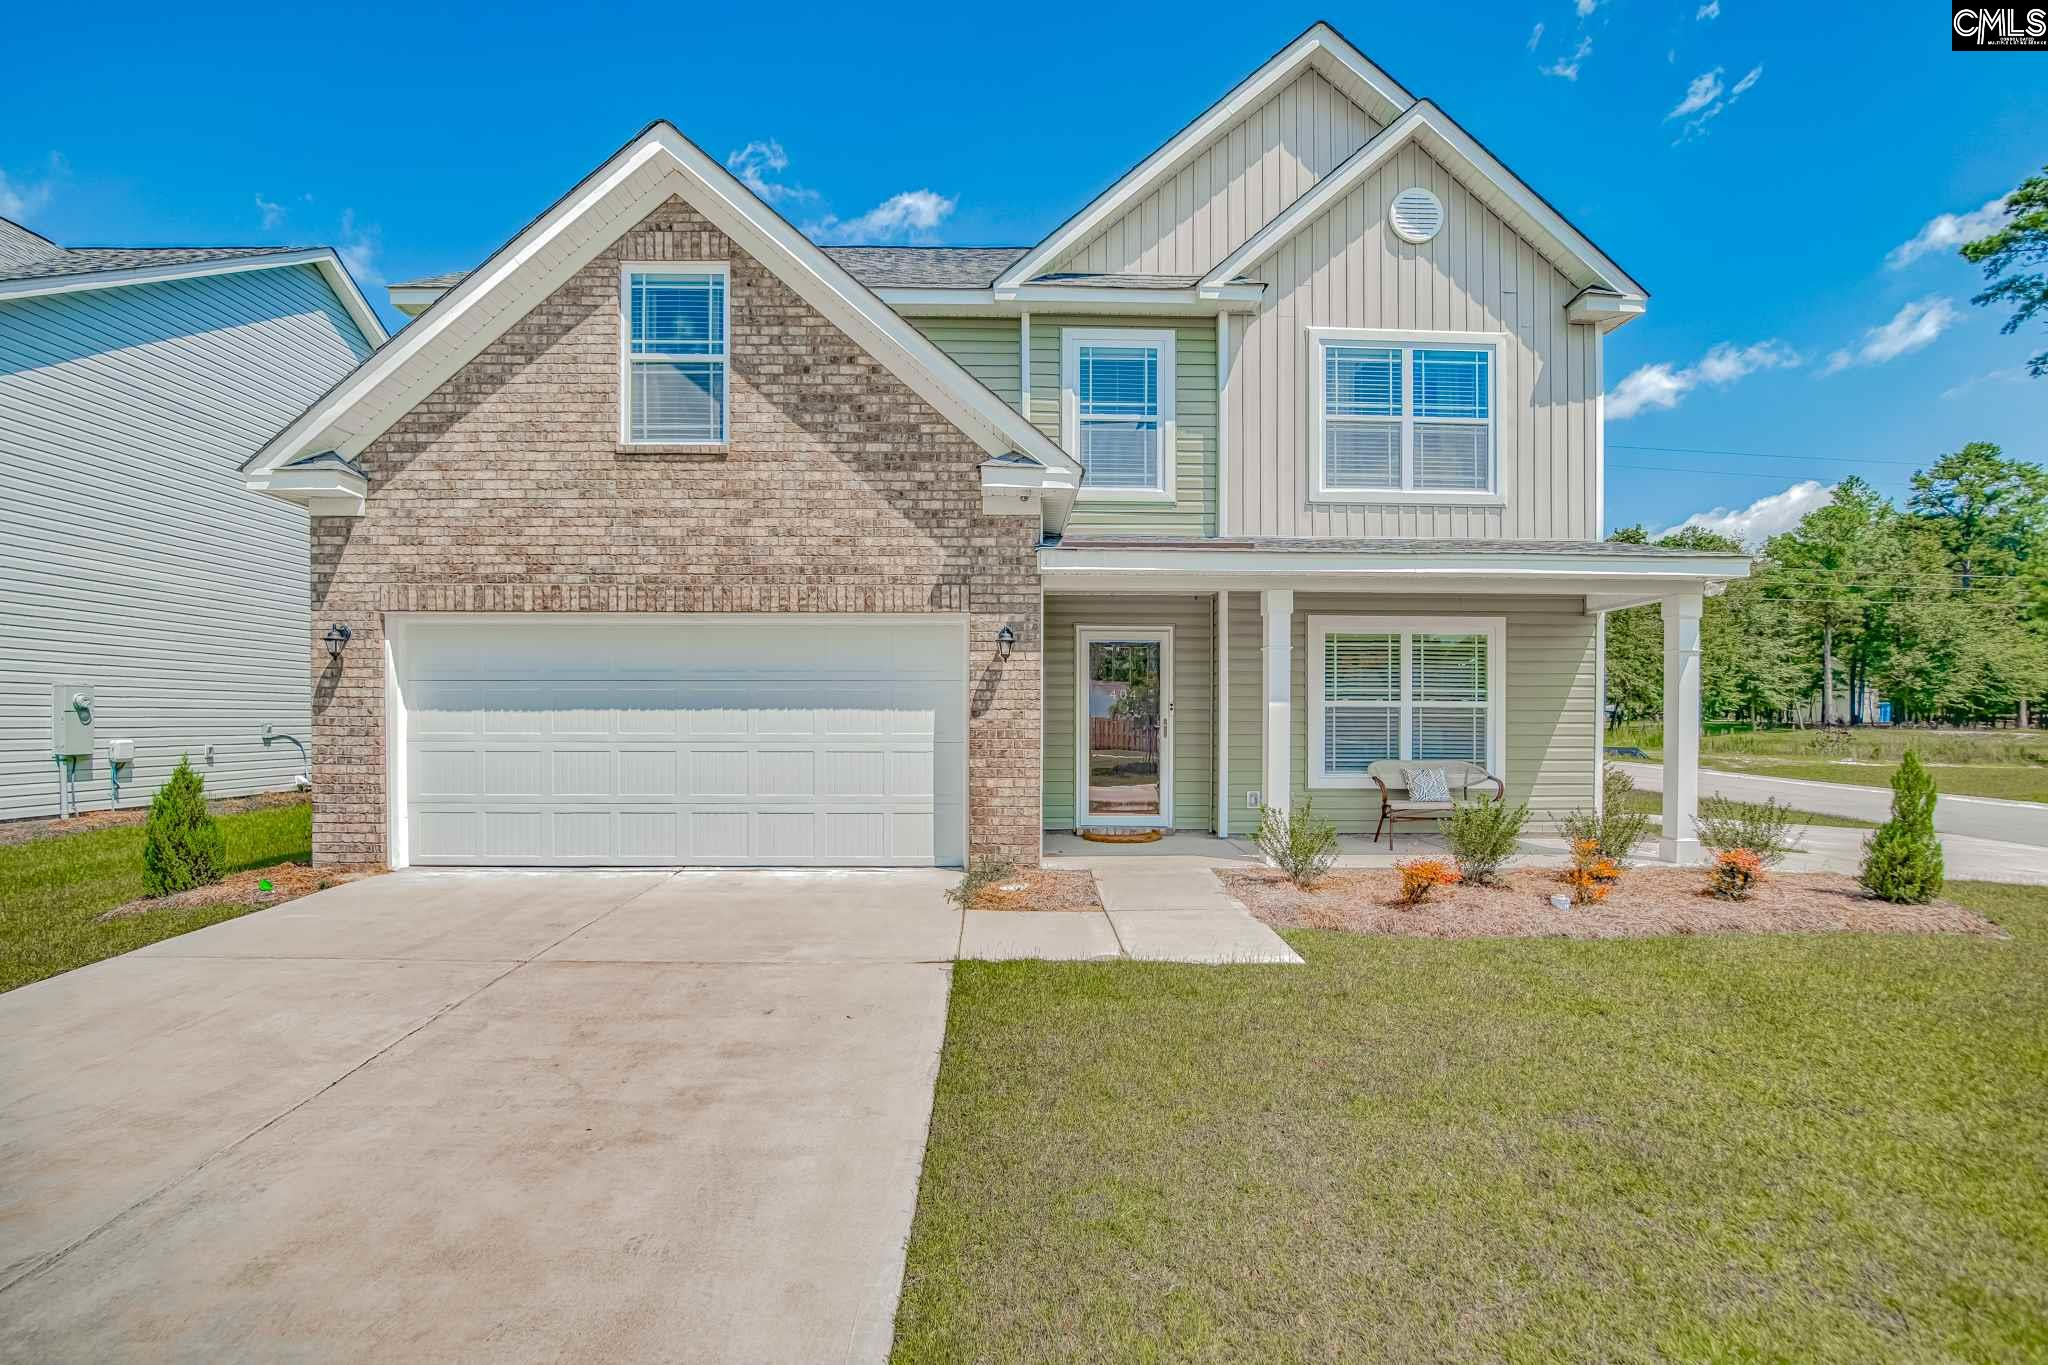 637 Watershed Columbia, SC 29223